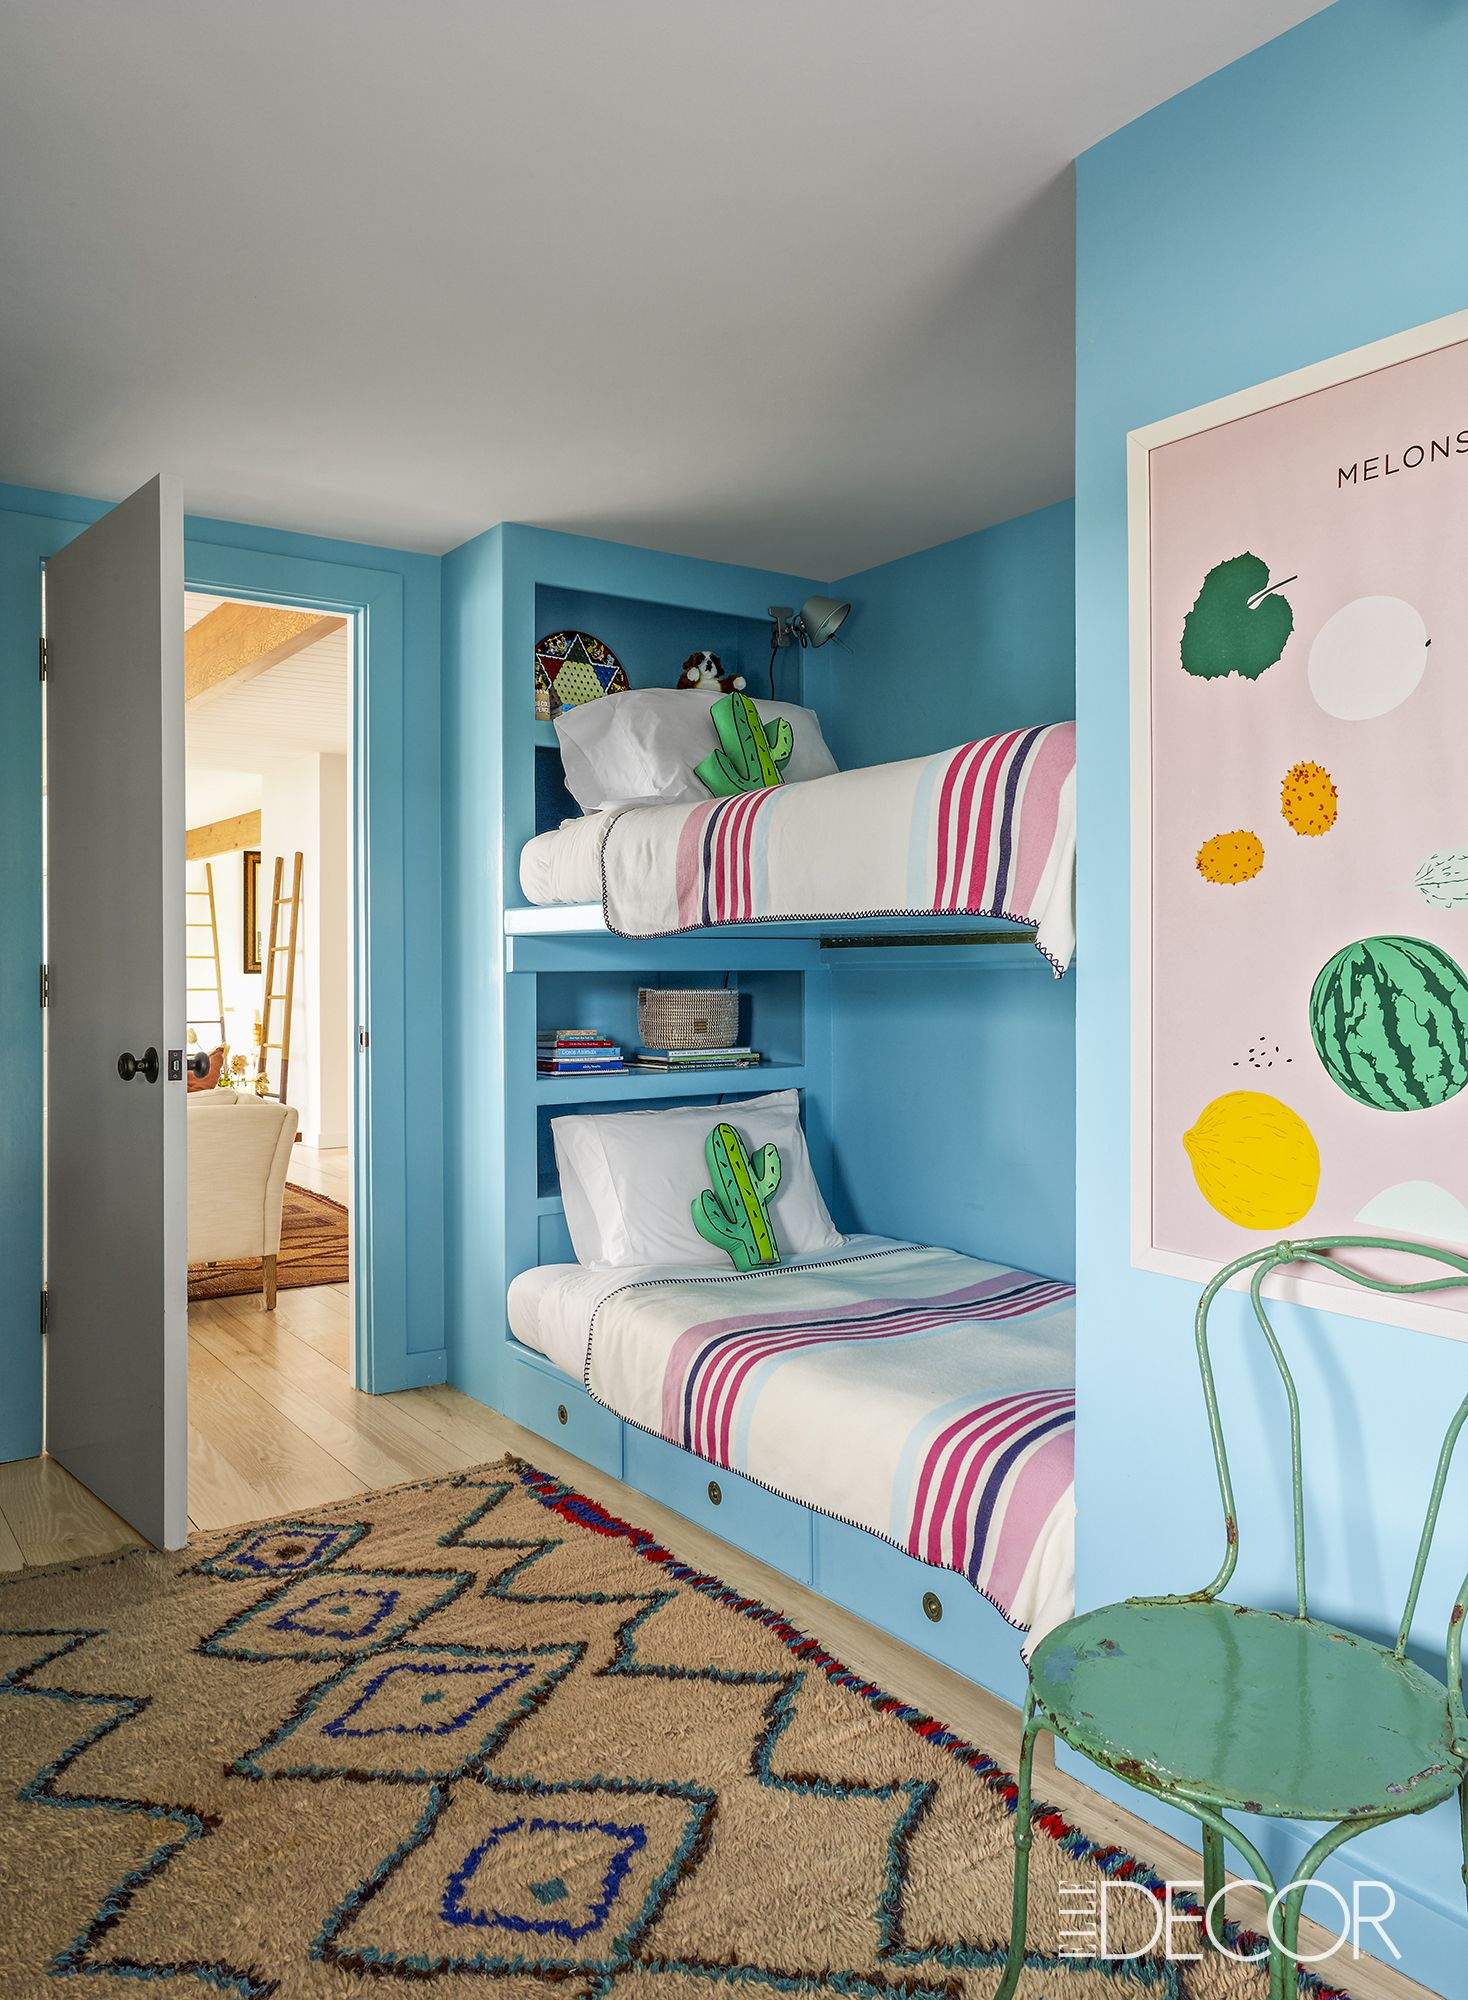 18 cool kids room decorating ideas kids room decor rh elledecor com Easy and Cheap Decorating Ideas Inexpensive Decorating Ideas